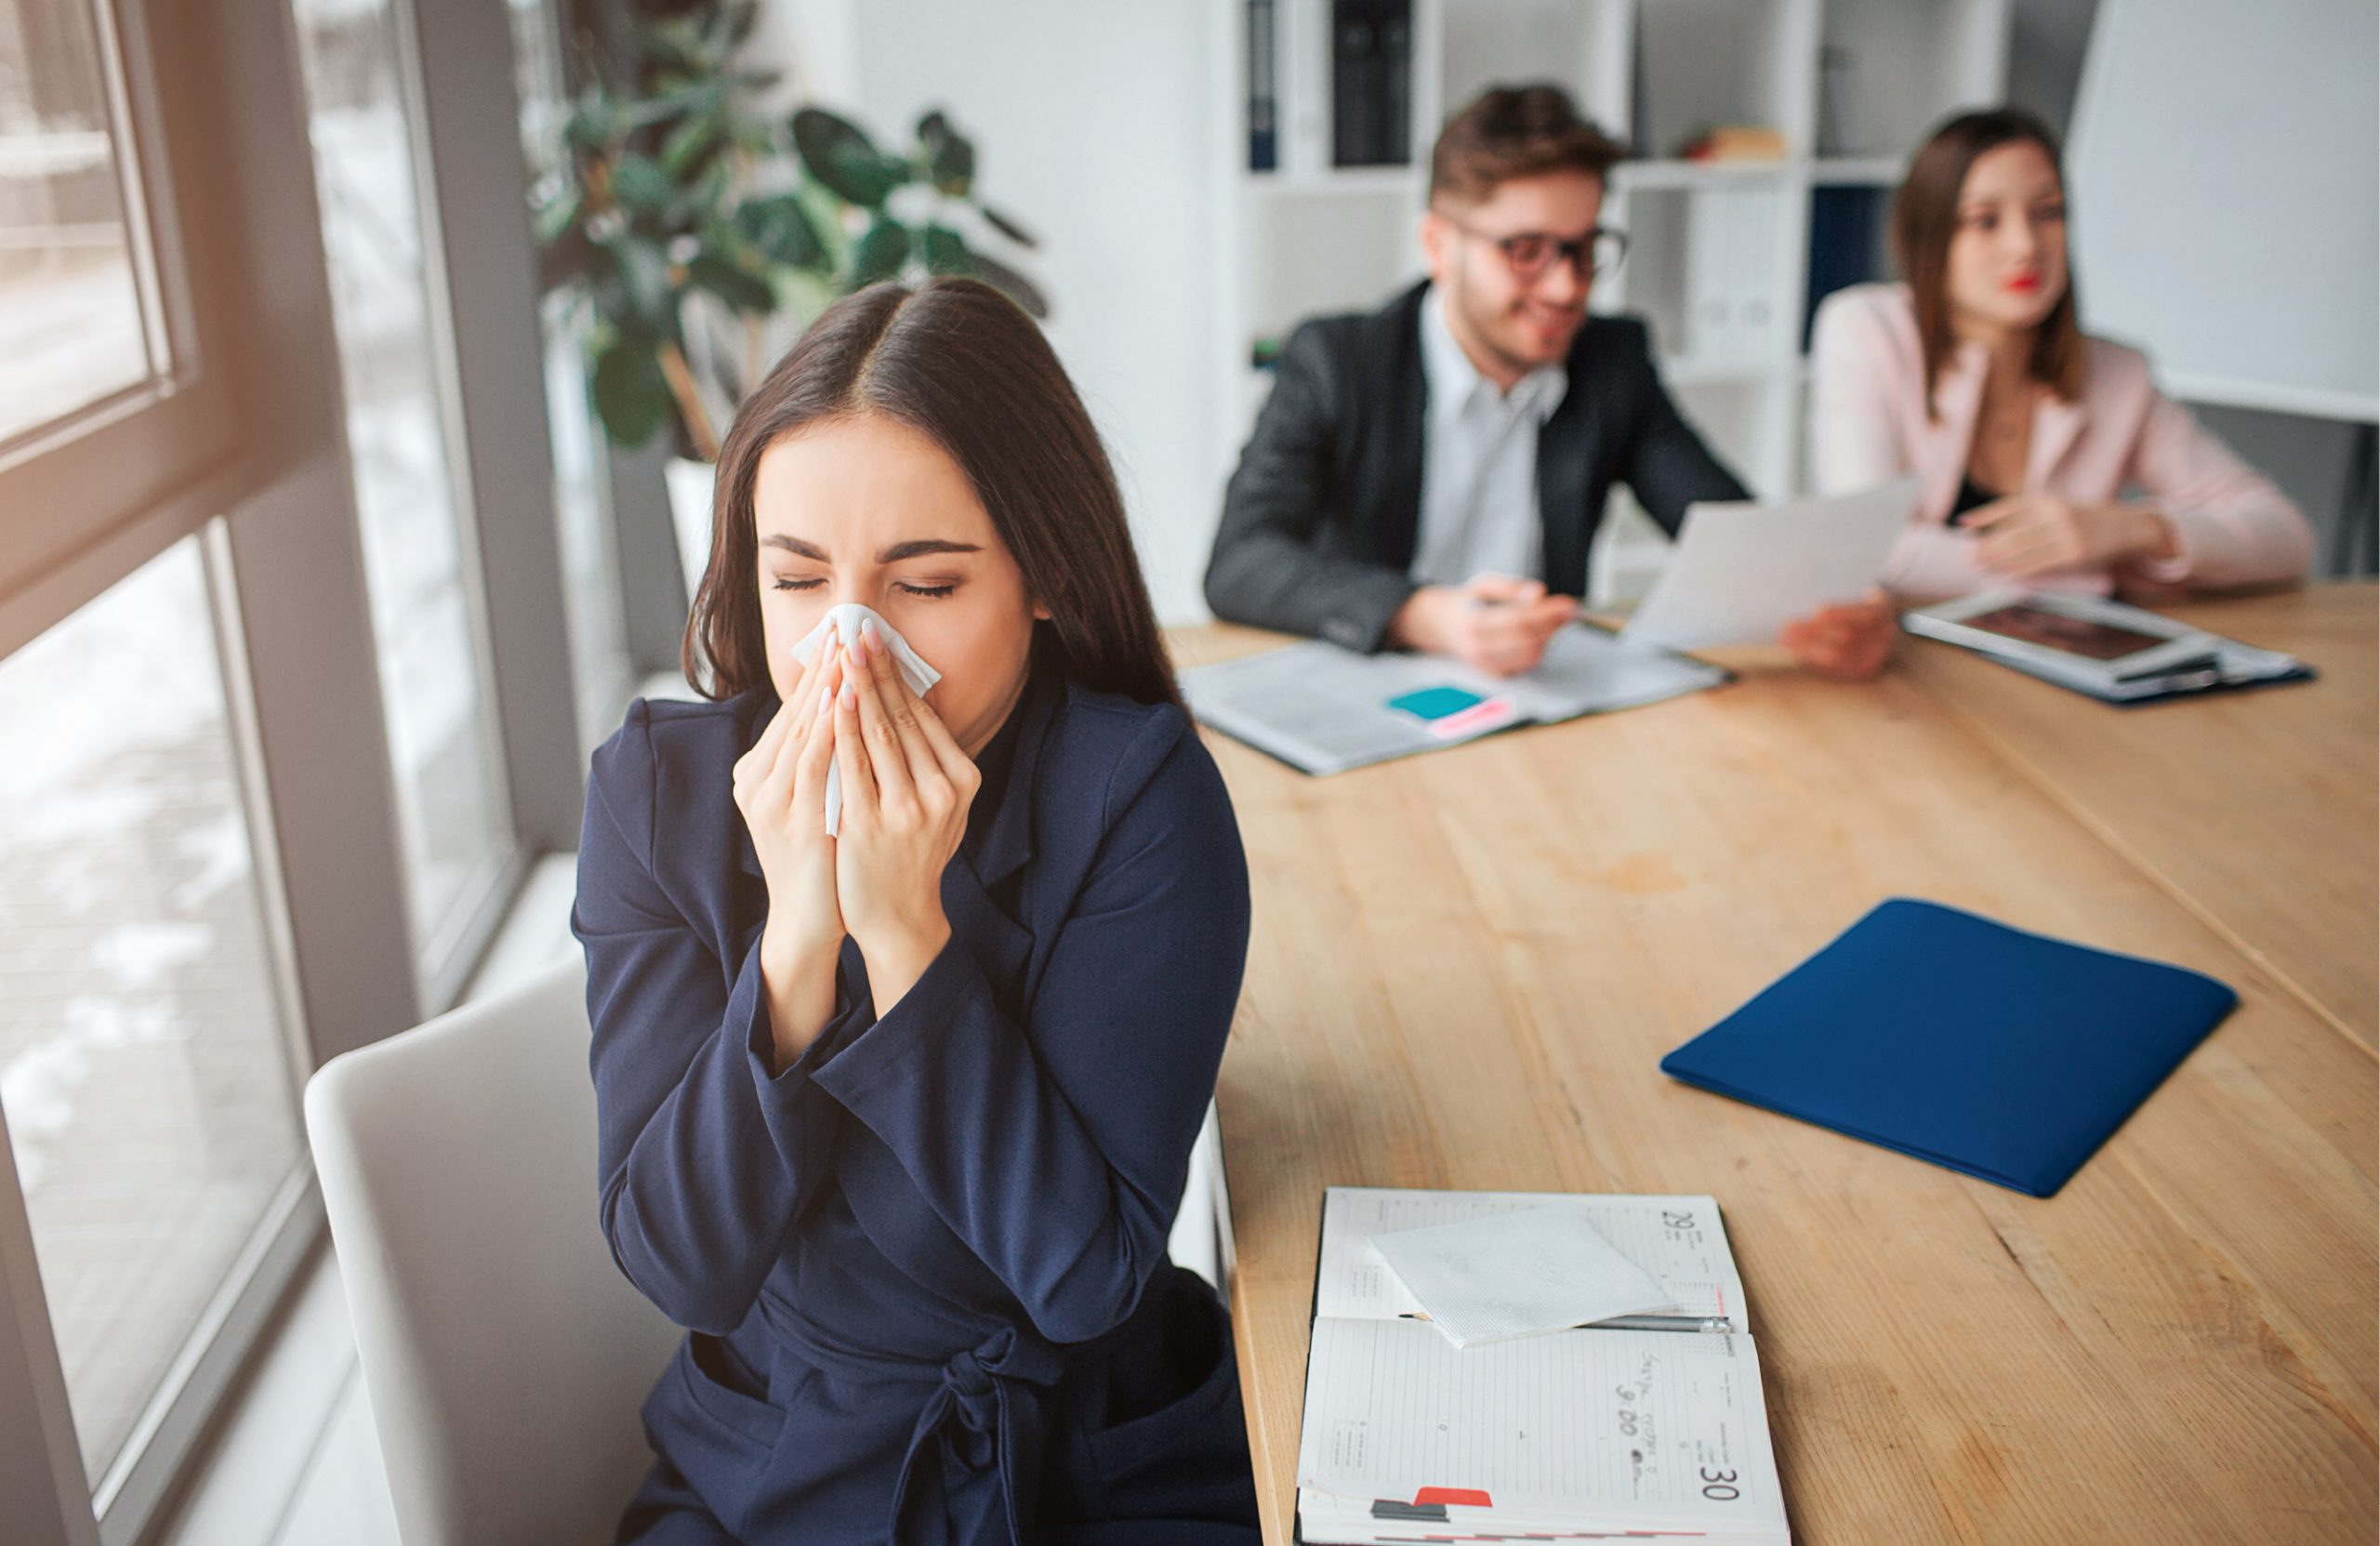 5 Ways to Keep Your Office Flu Free